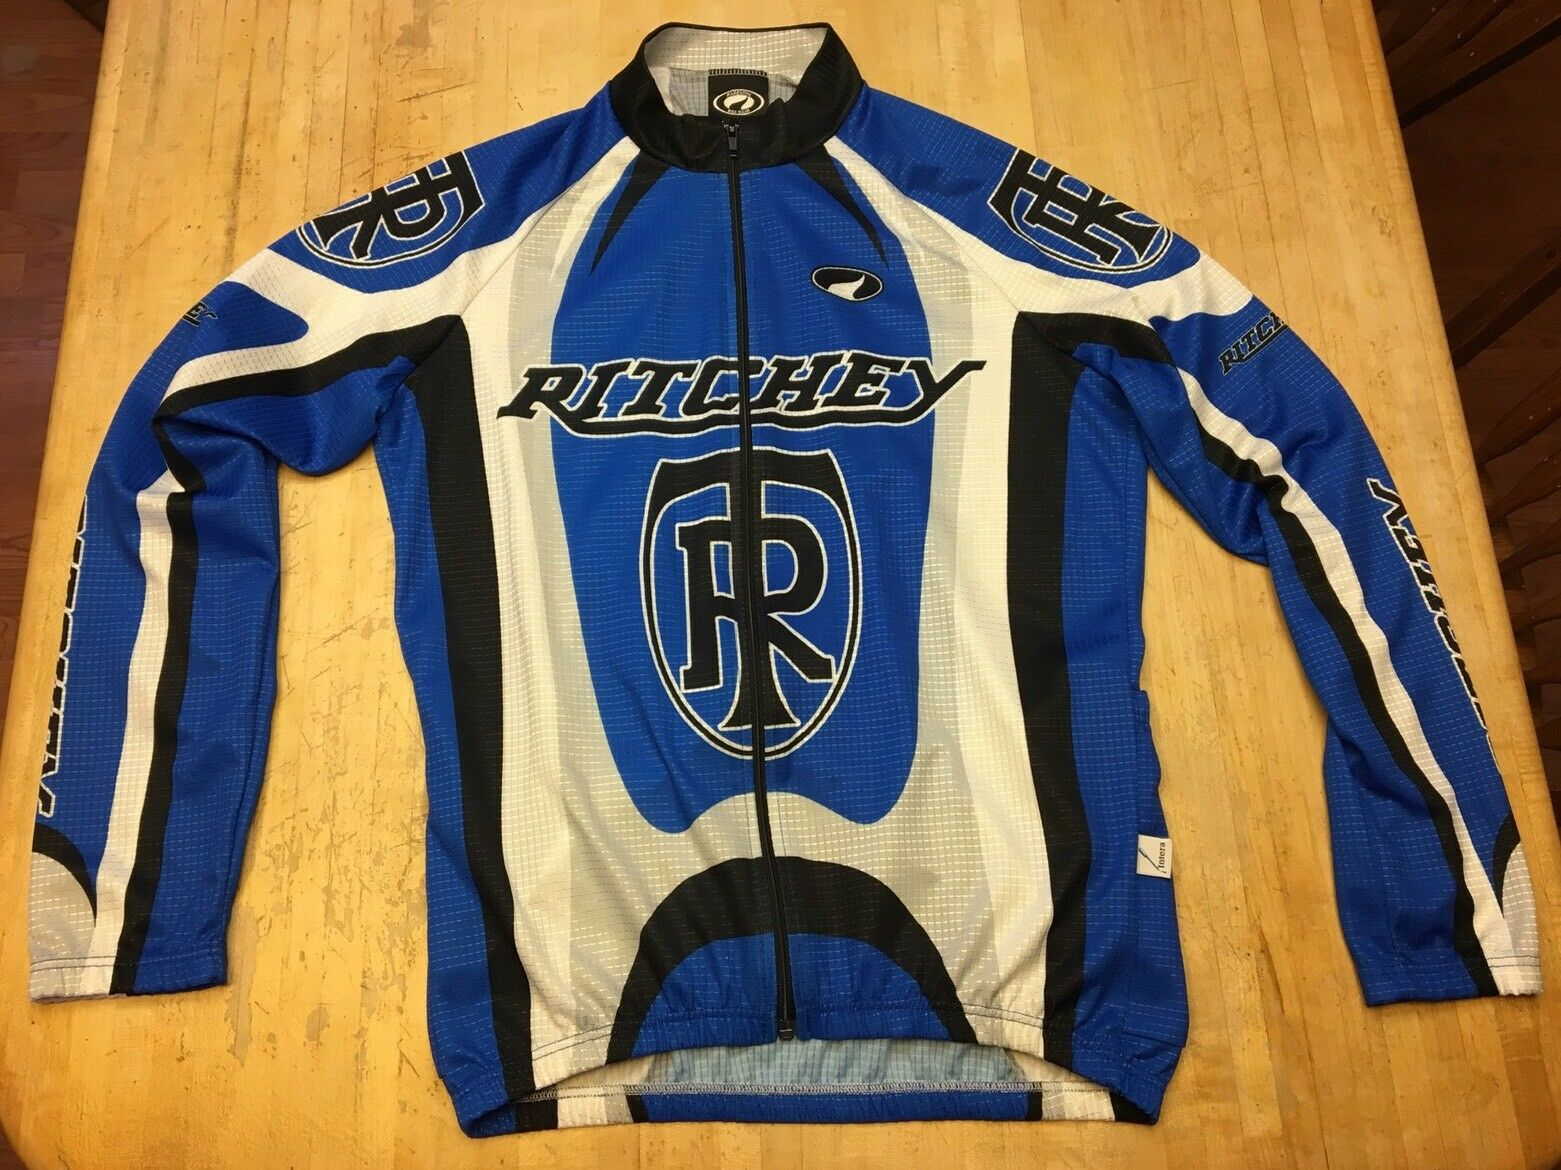 RARE Mens Parentini Bike Wear Ritchey Long Sleeve Full Zip Cycling Jacket Large